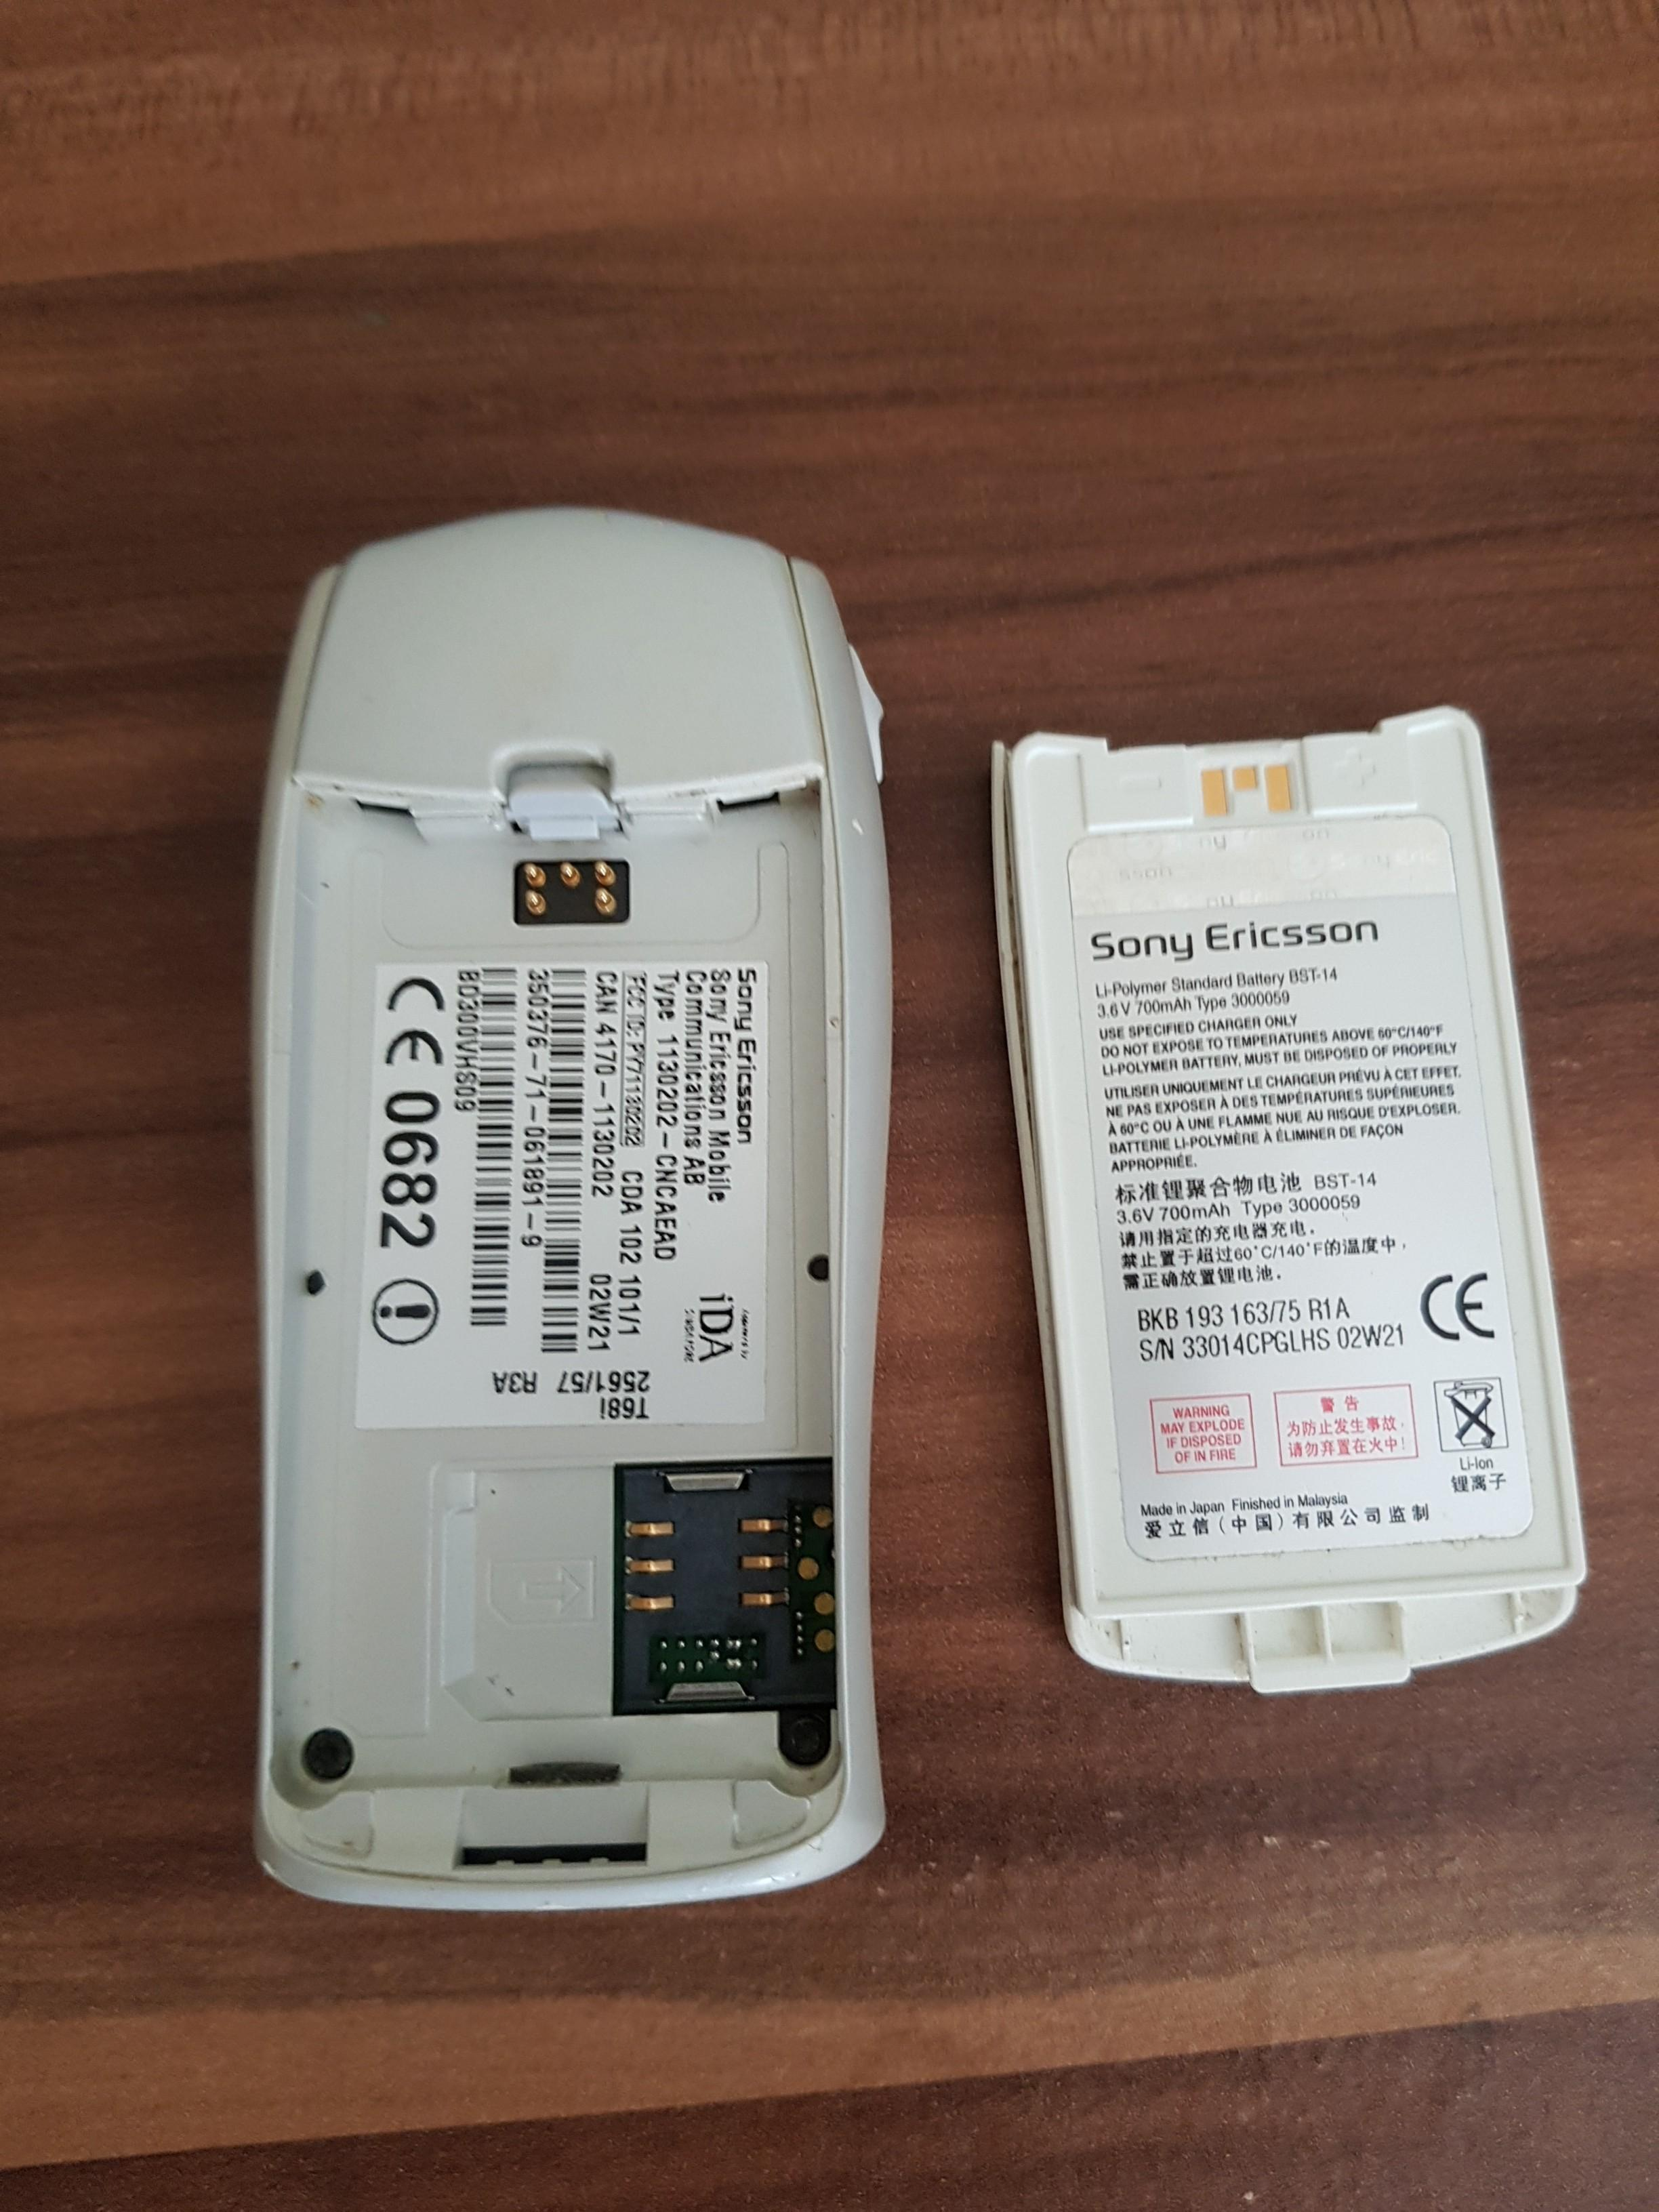 Sony Ericsson mobile without charger